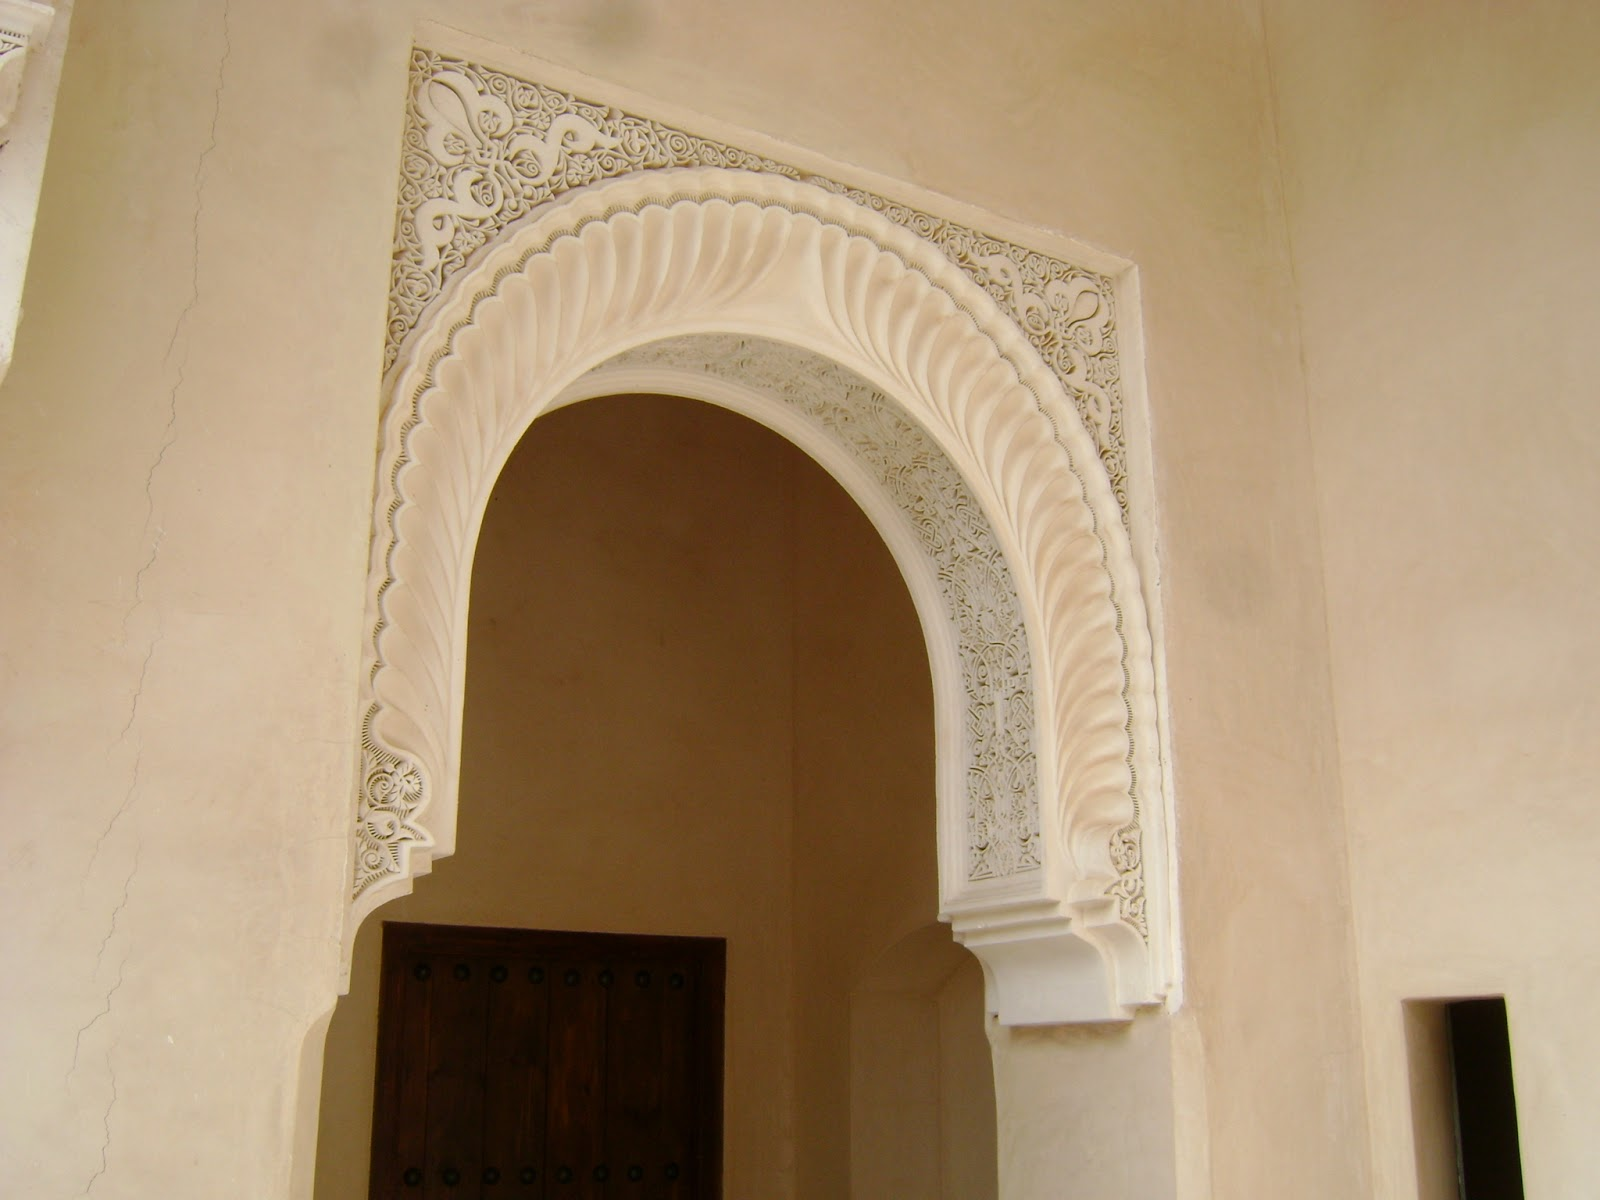 The emblematic moroccan arch